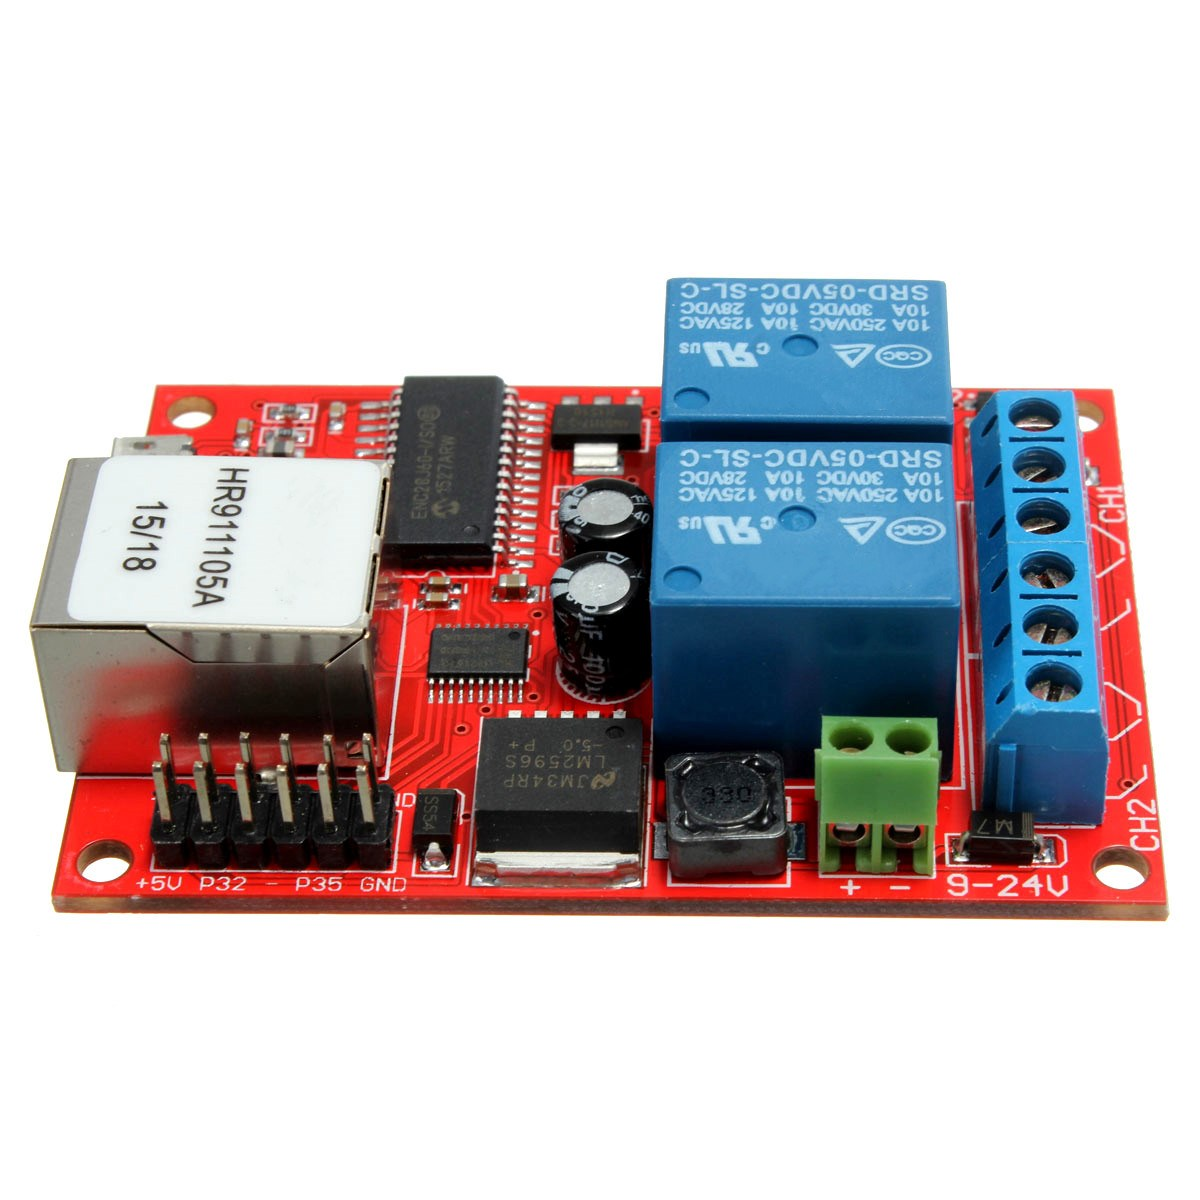 New Arrival Electronic Kit Circuit Board Lan Ethernet 2 Way Relay Simple Printed Products Delay Switch Tcp Udp Controller Module Web Server In Lcd Modules From